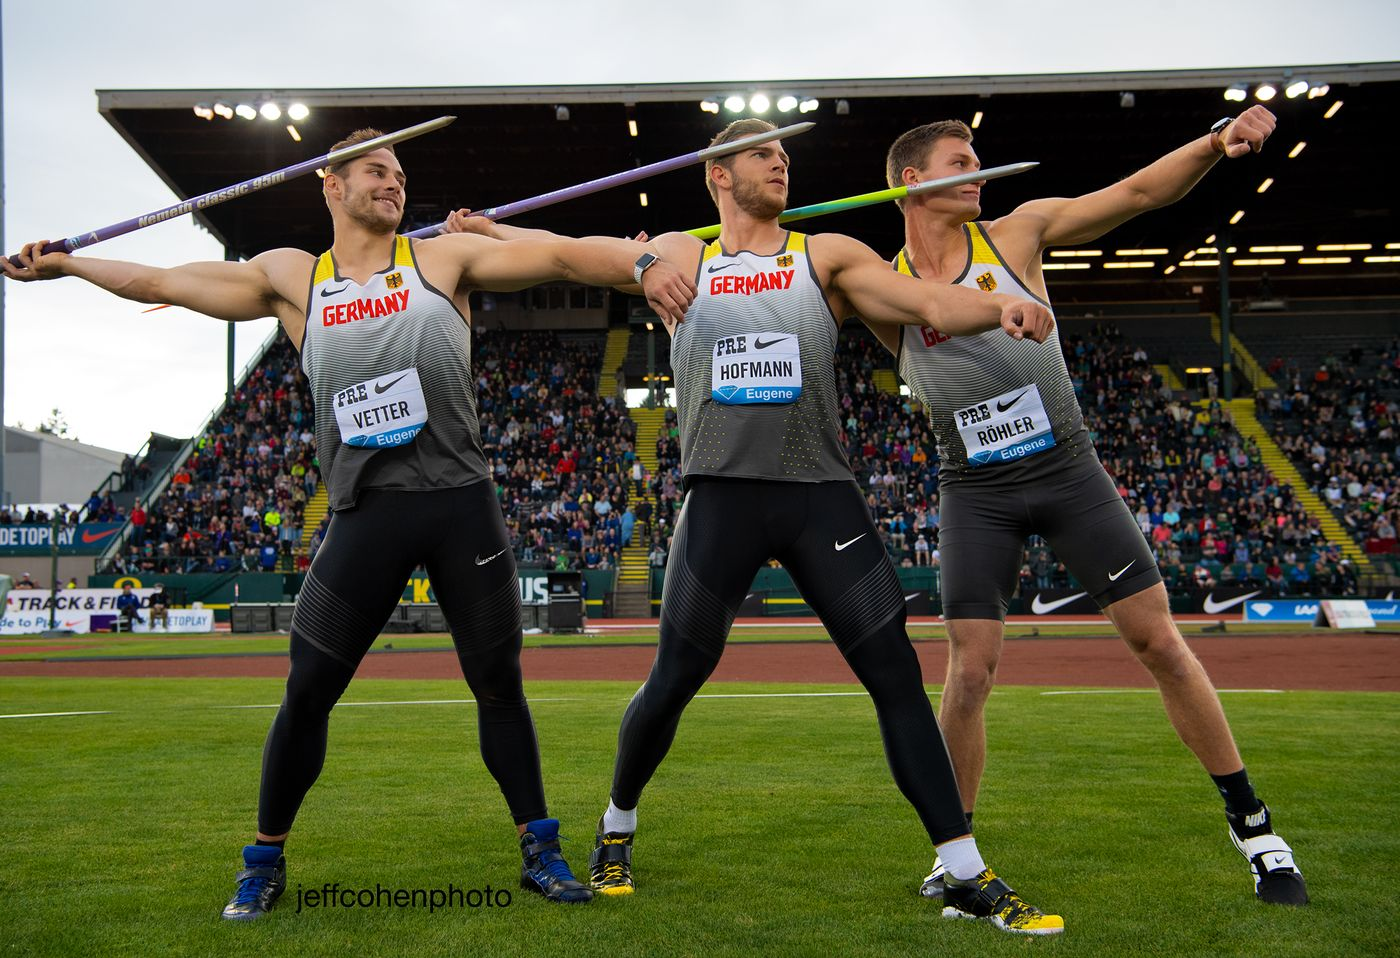 2018--pre-classic-night-1774-german-men-jav--jeff-cohen-photo--web.jpg